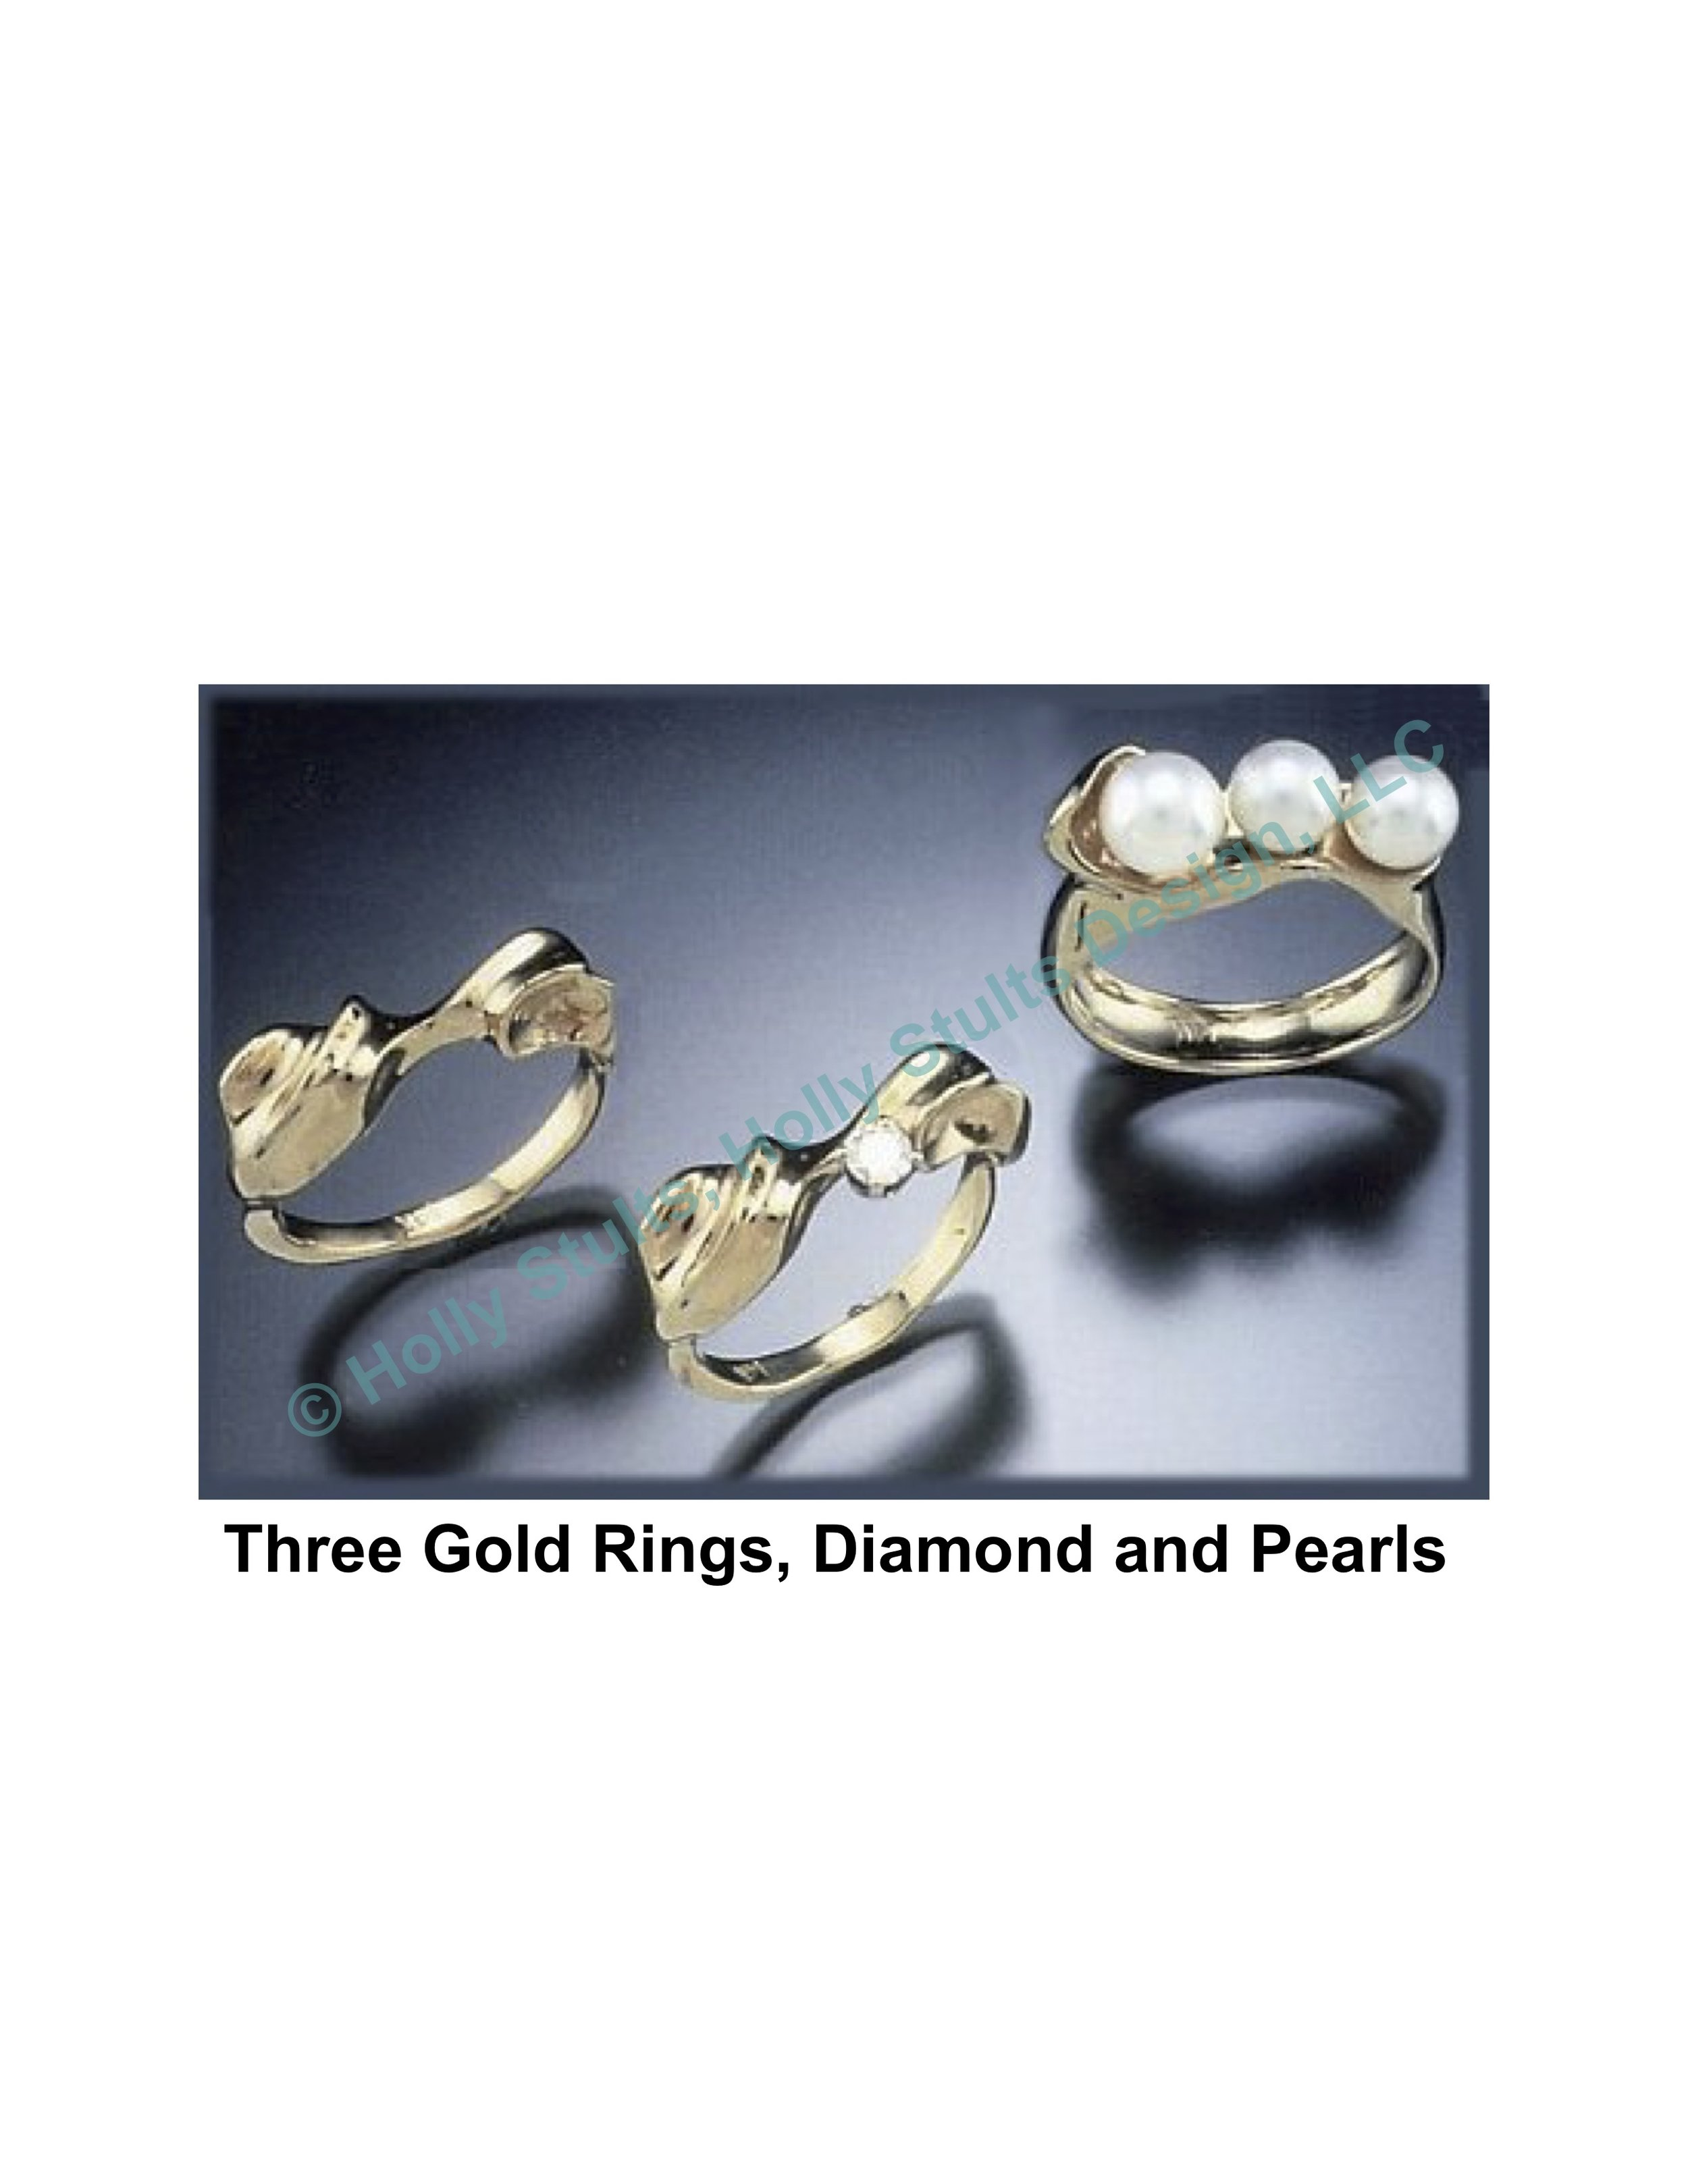 Three Gold Rings, Diamond and Pearls.jpg